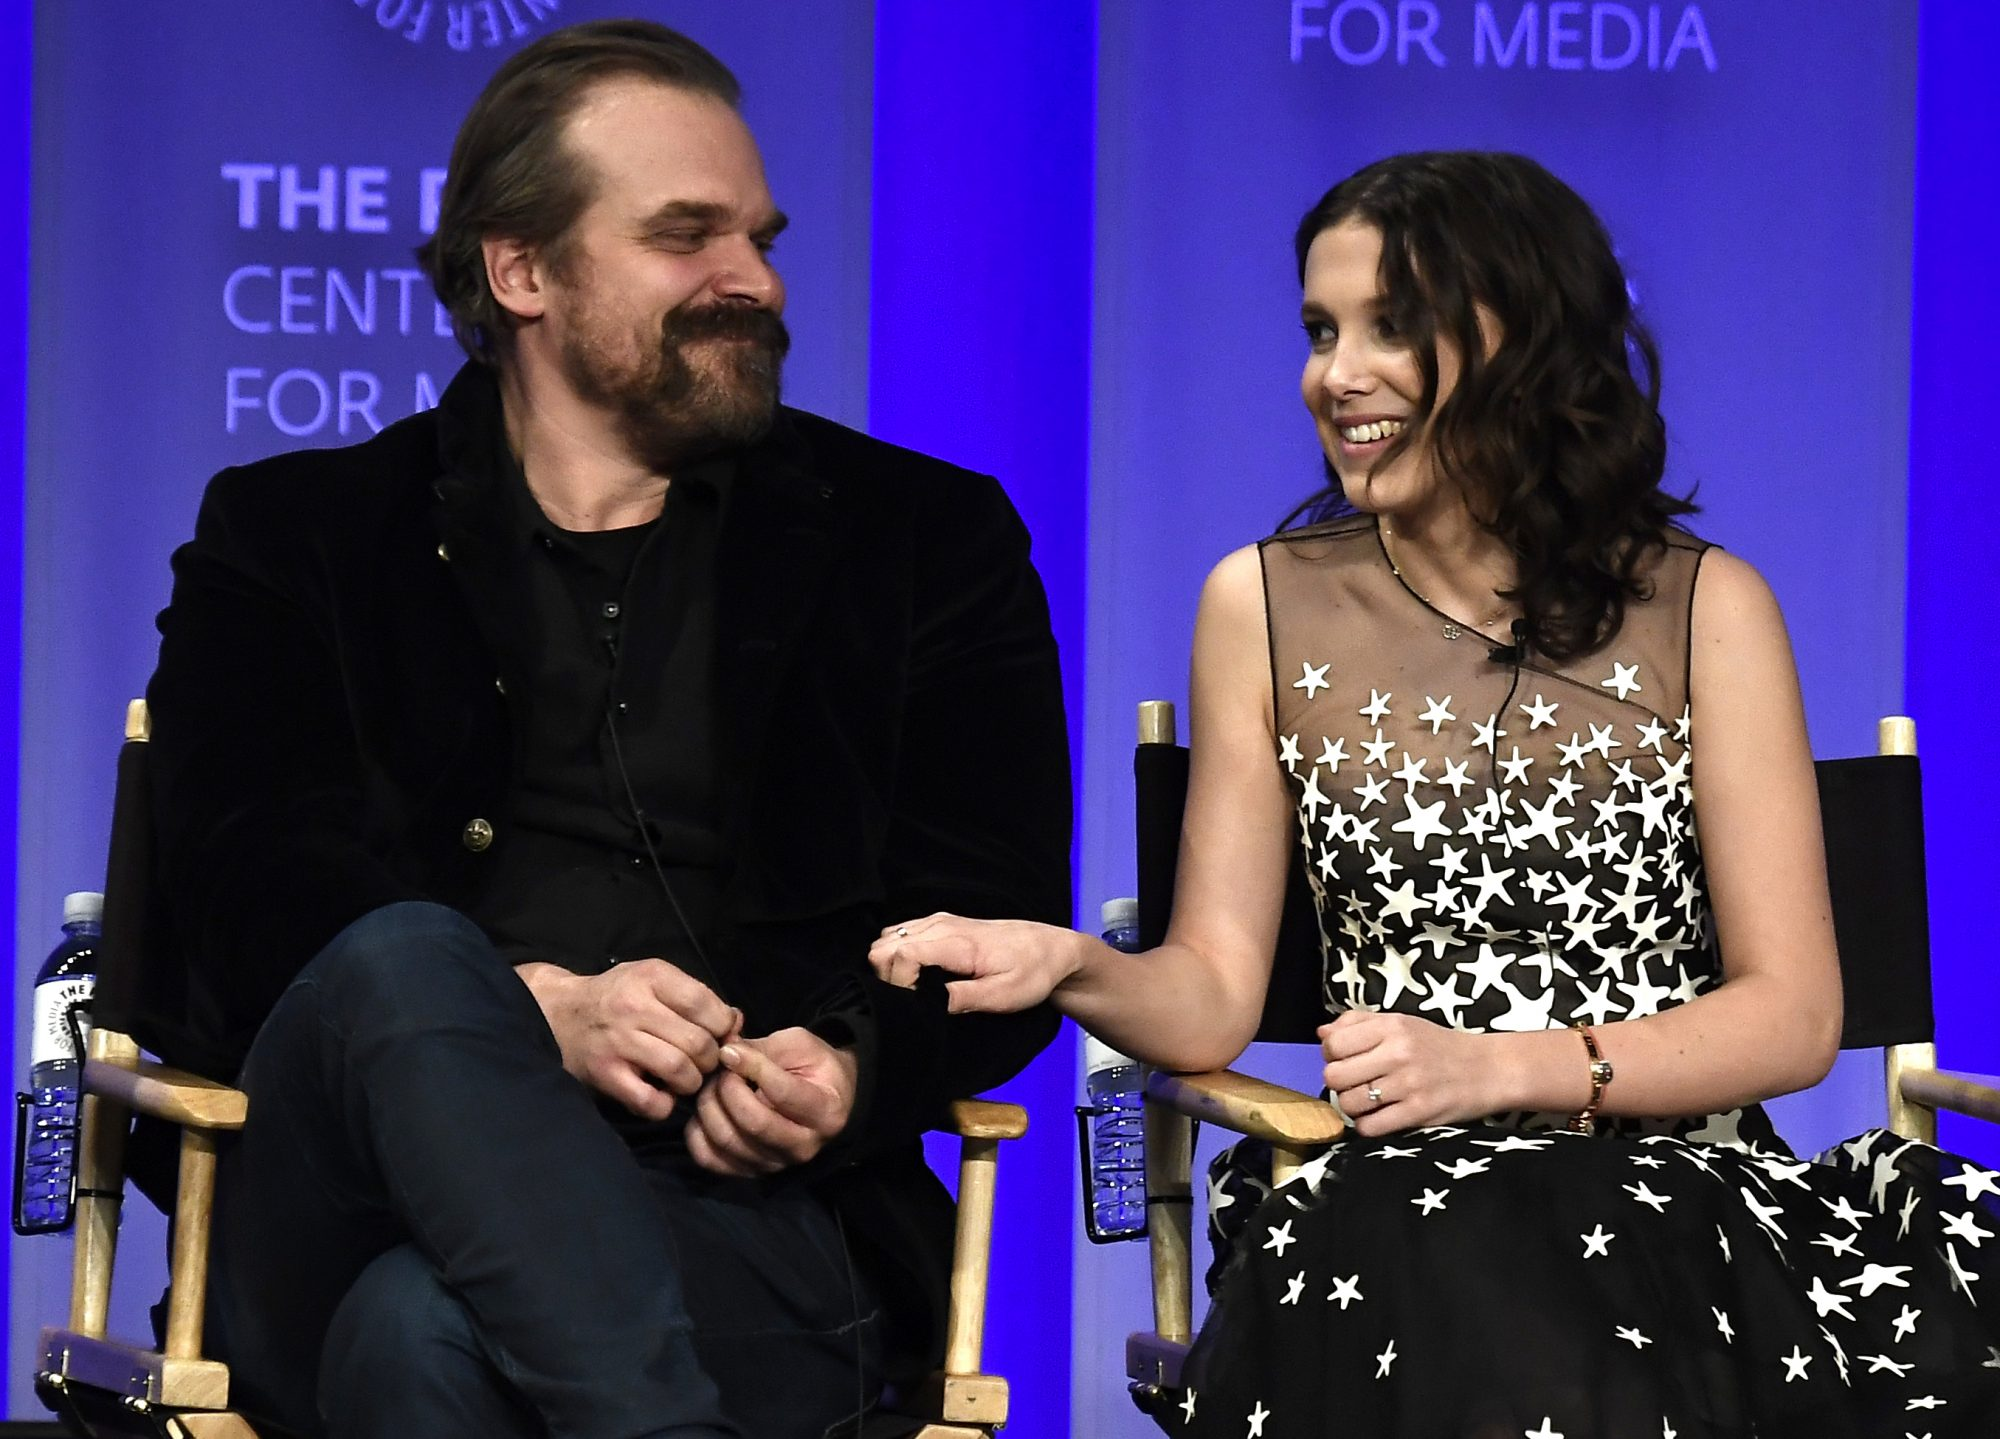 David Harbour and Millie Bobby Brown